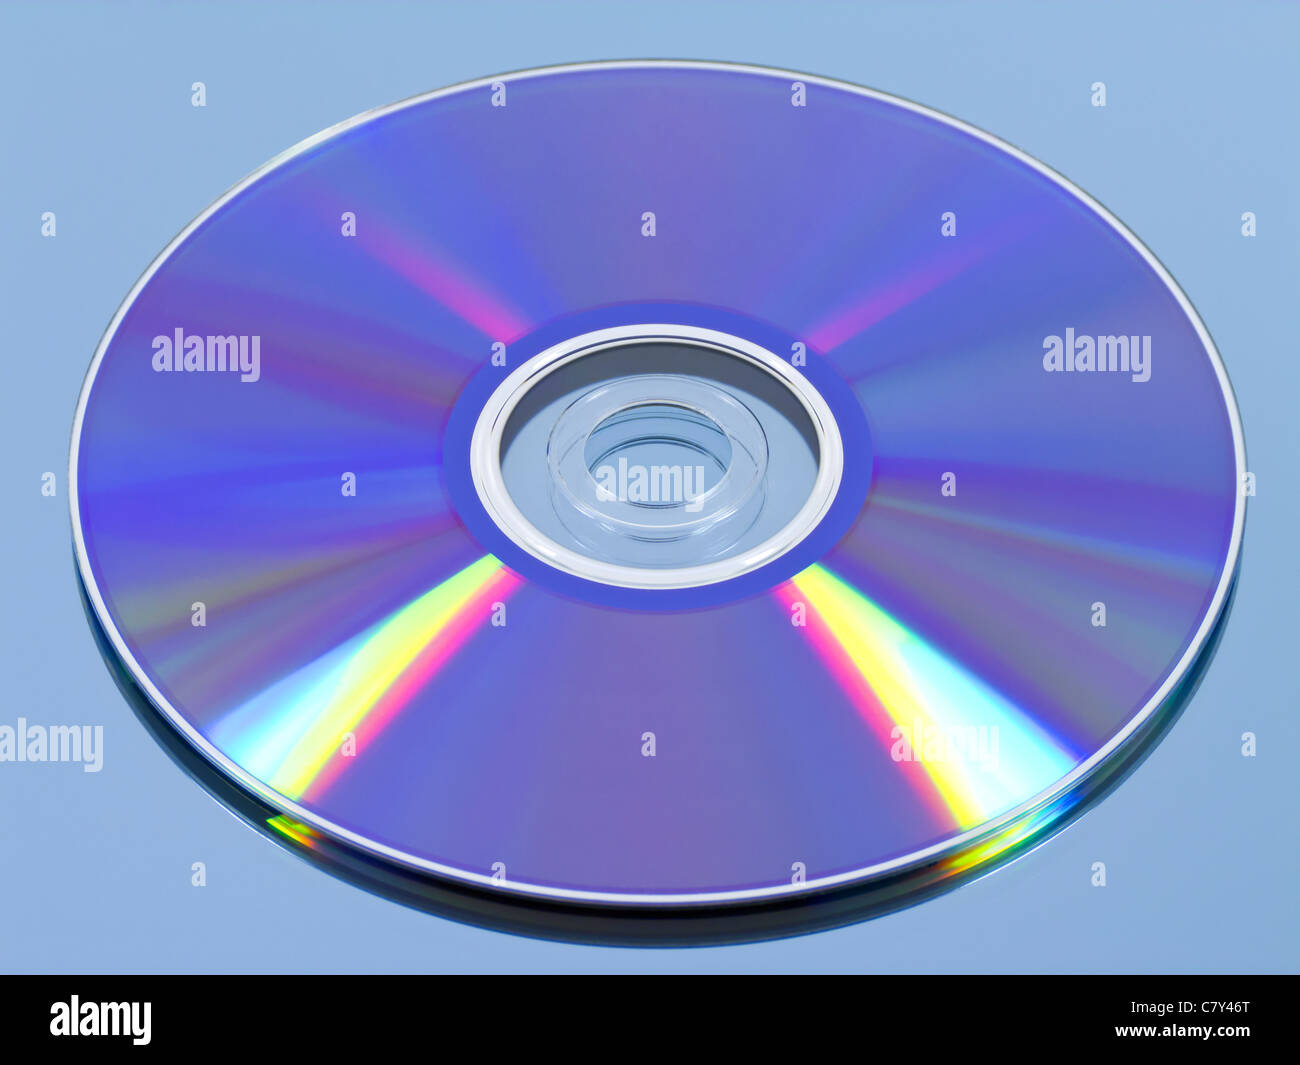 Disk on Blue - Stock Image